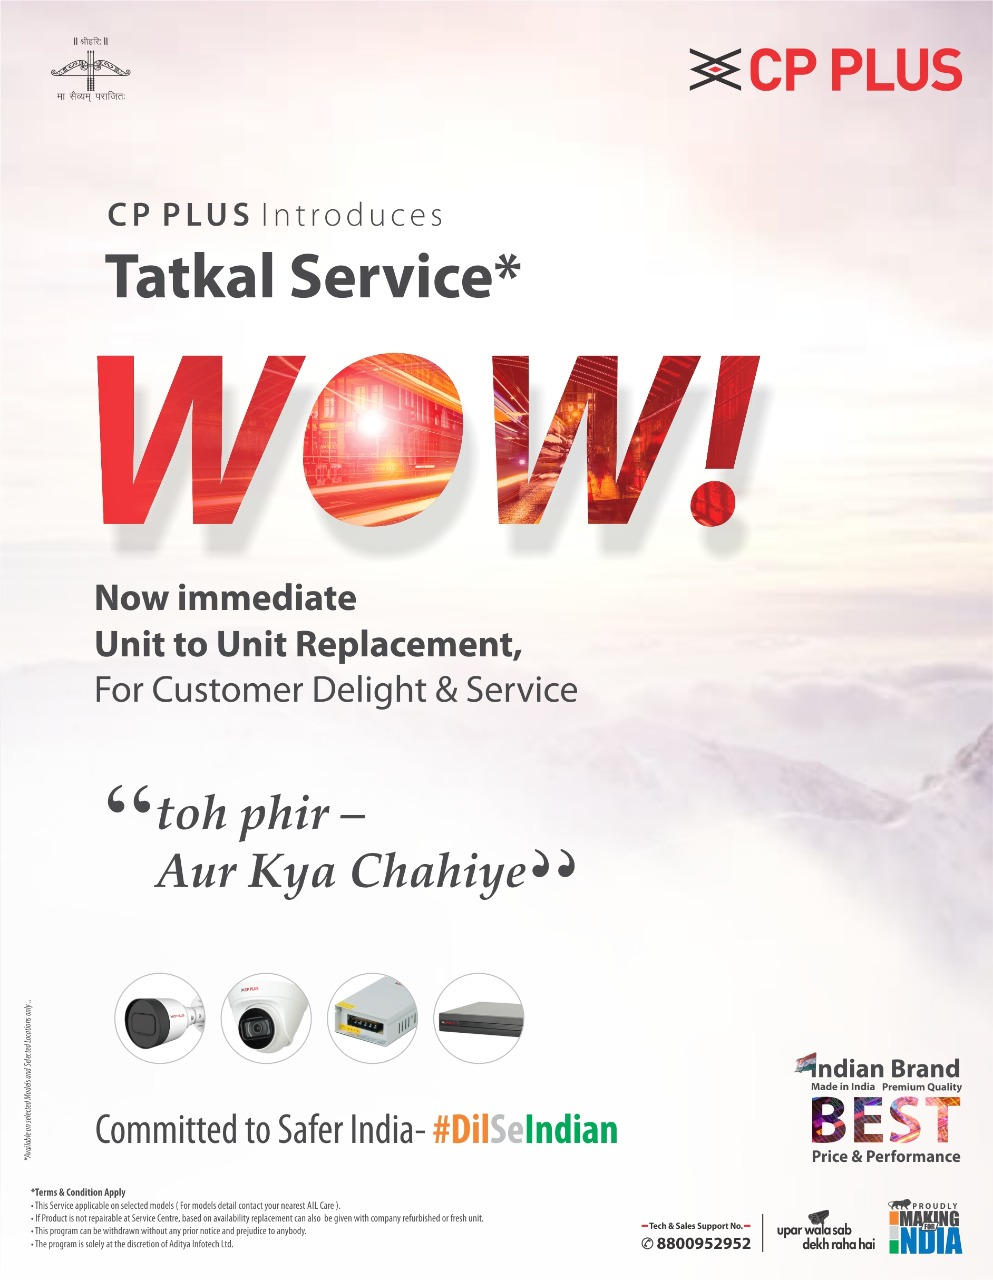 CP PLUS Introduces Tatkal Service to Bring in Service Differentiation